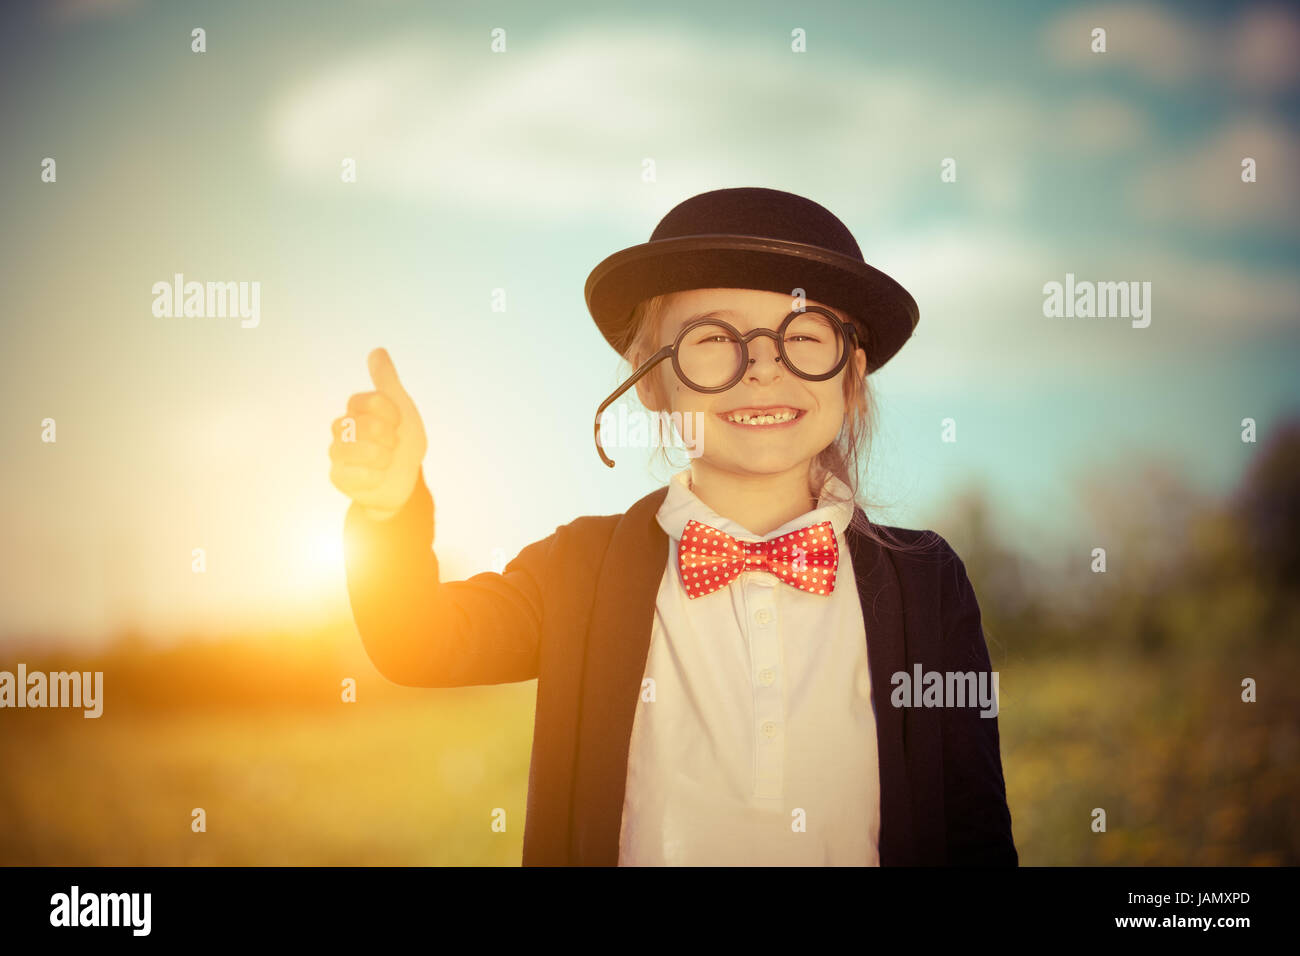 Funny little girl in bow tie and bowler hat showing thumb up. - Stock Image